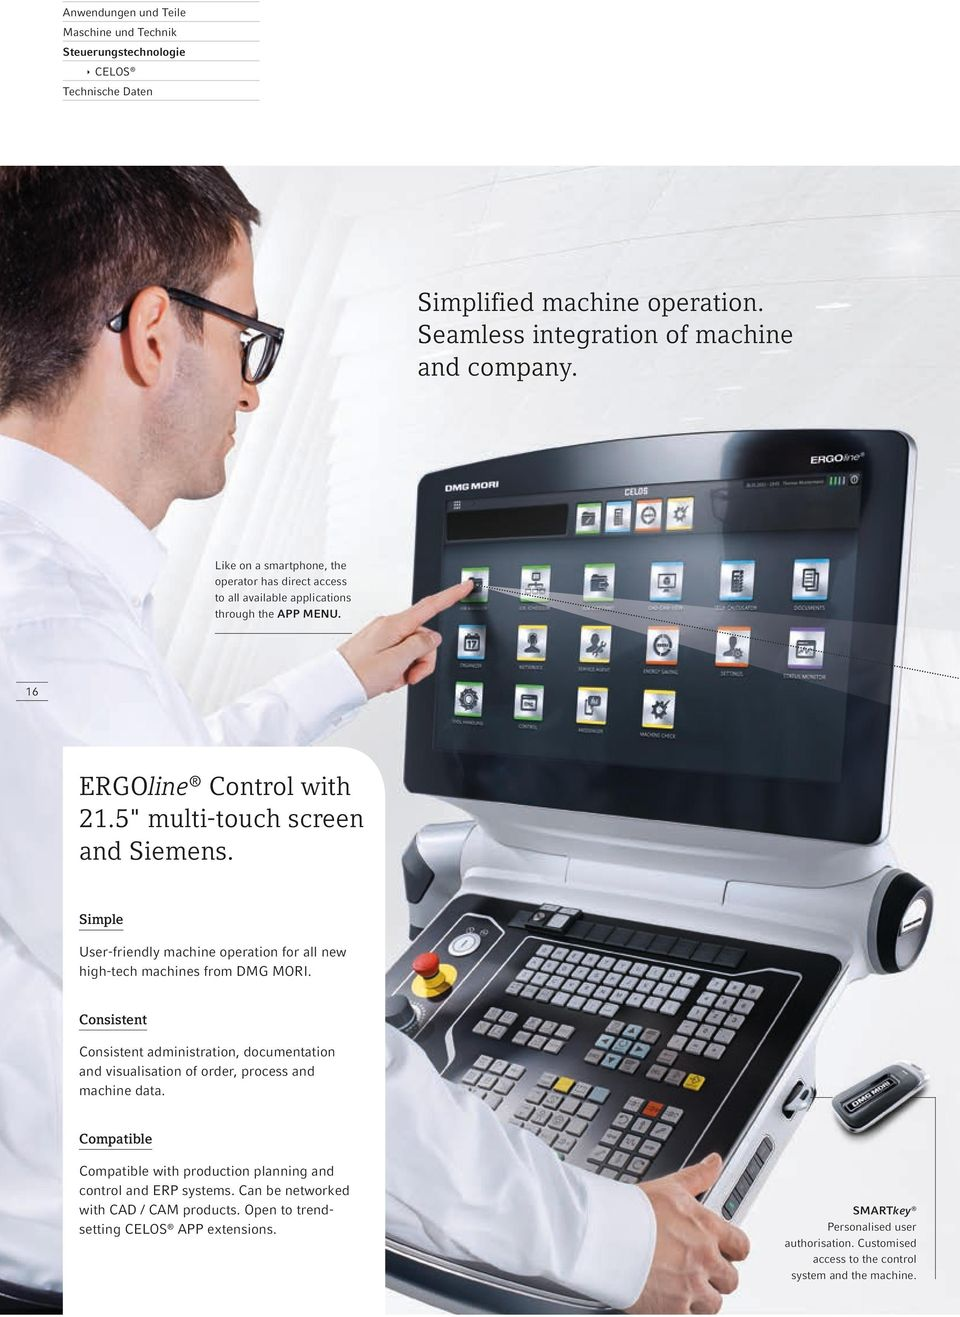 Simple User-friendly machine operation for all new high-tech machines from DMG MORI. Consistent Consistent administration, docu mentation and visualisation of order, process and machine data.